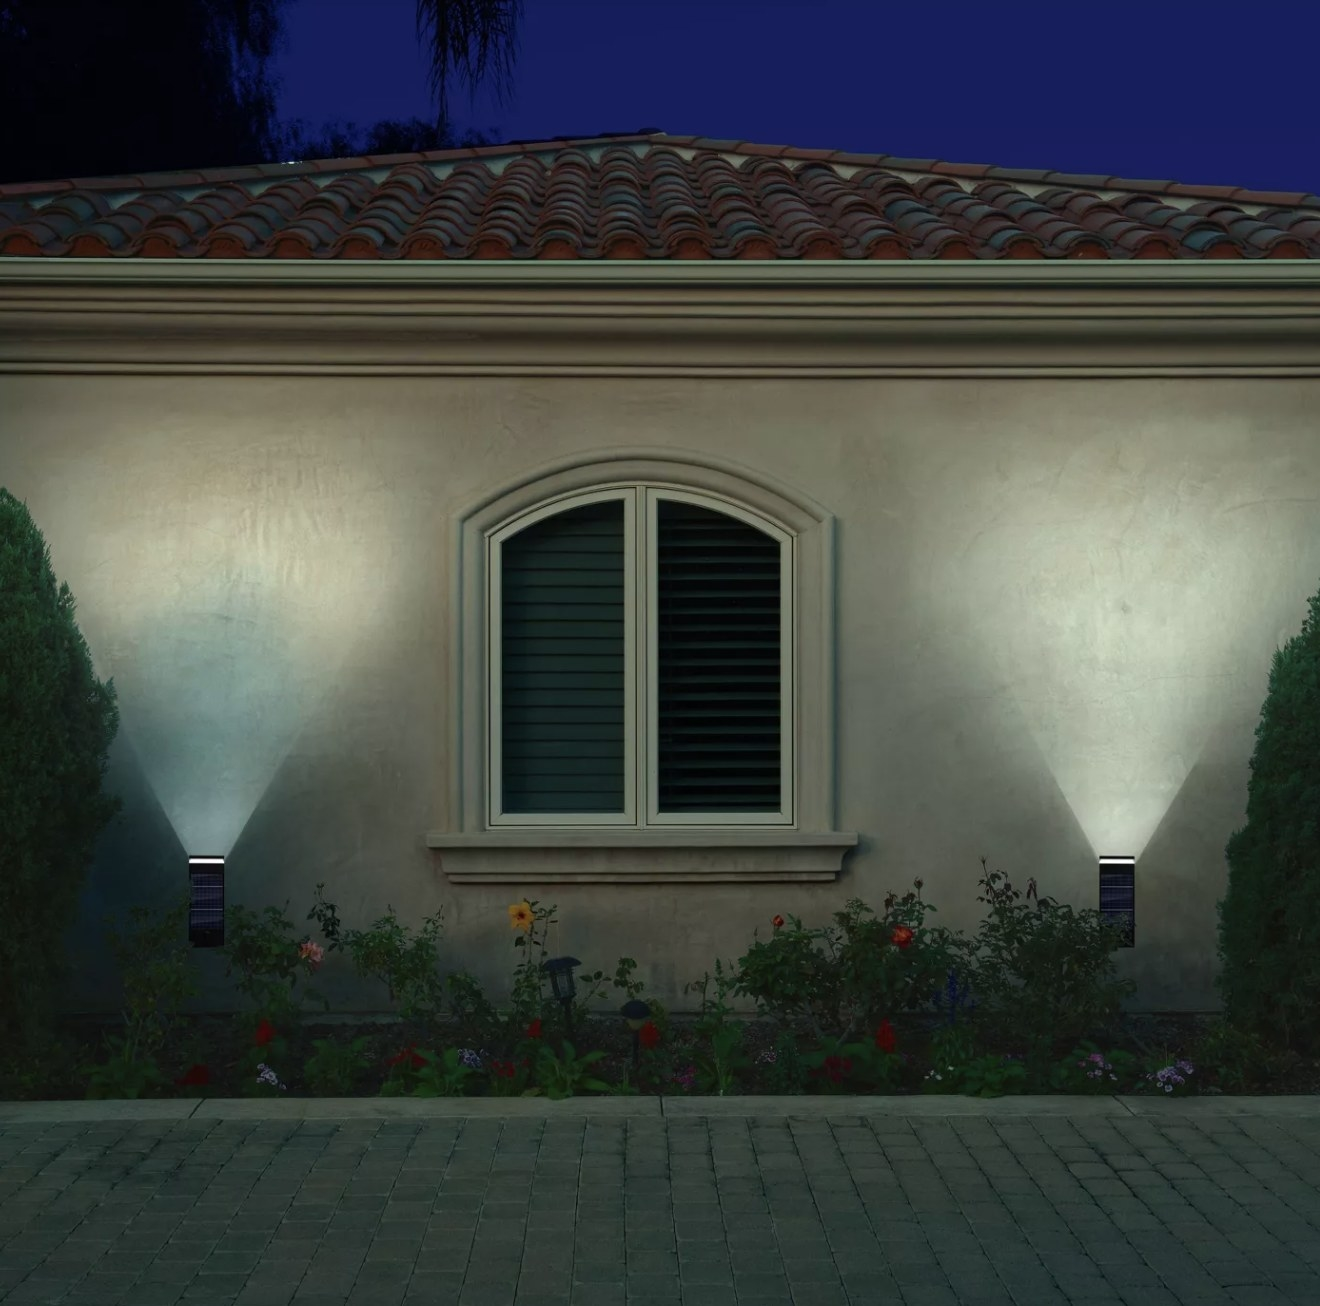 Two solar lights attached to the outside wall of a home illuminating the evening